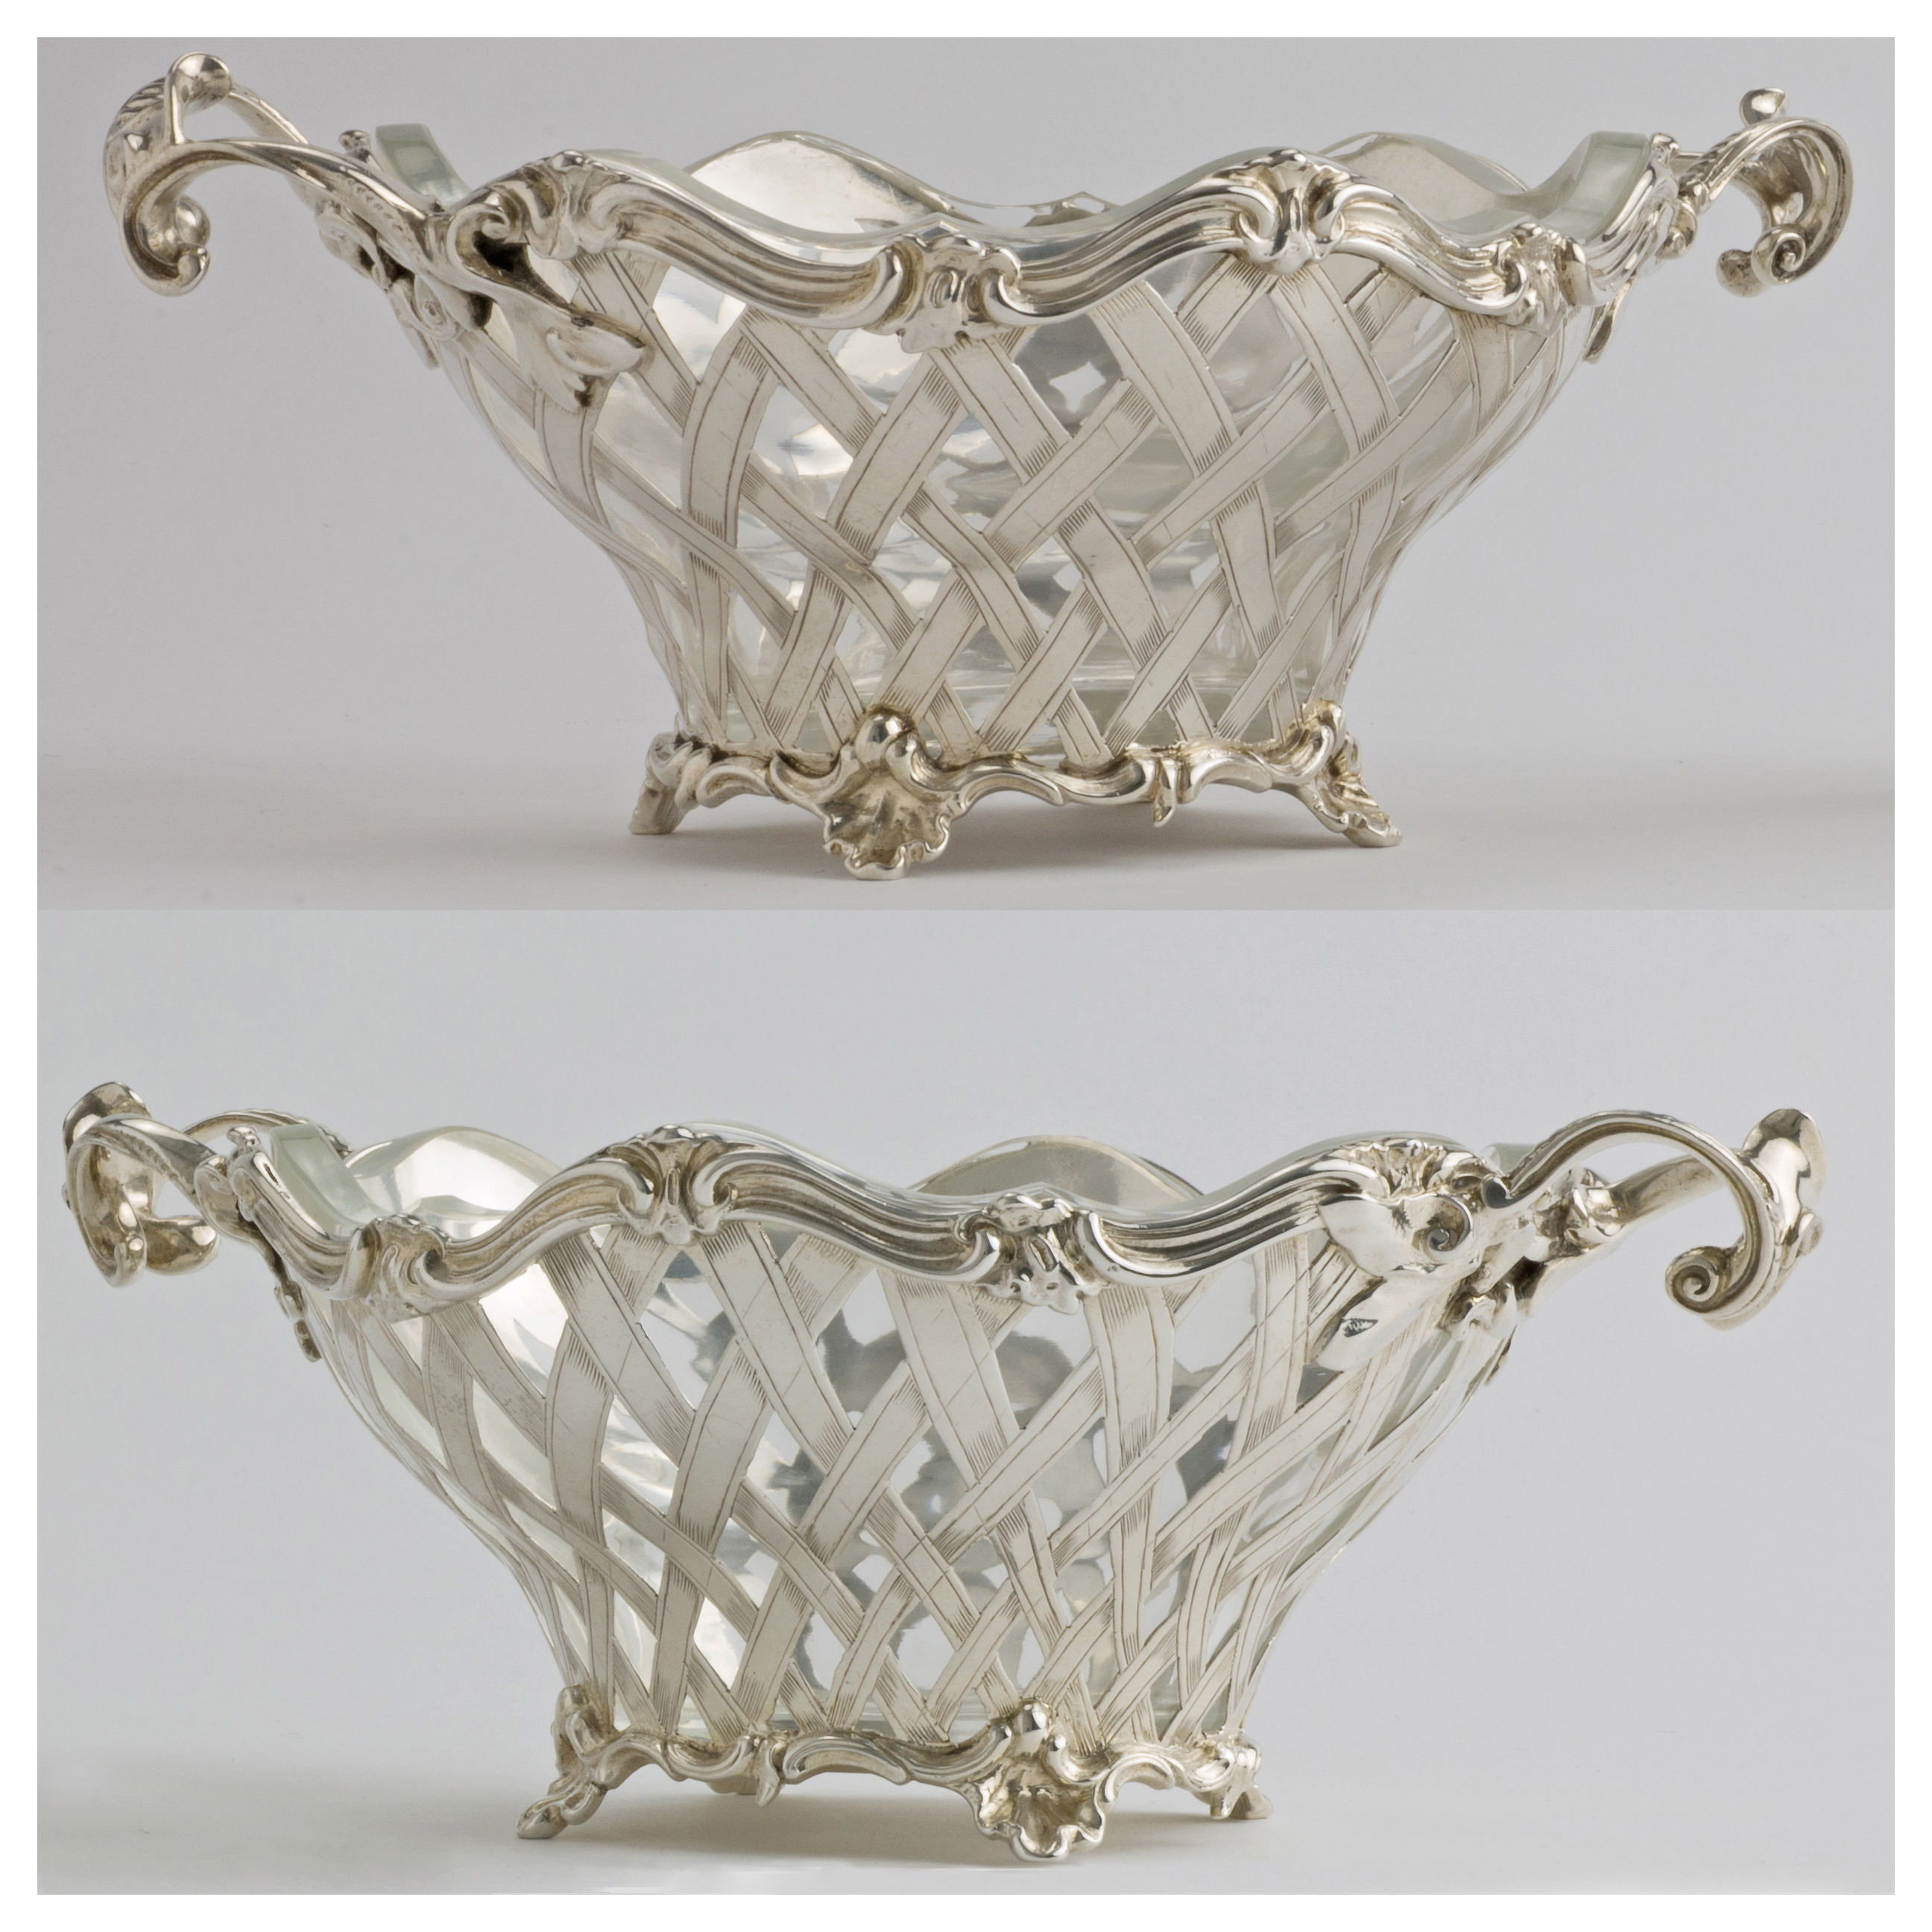 A Pair Of Garrard's Victorian Silver Baskets.